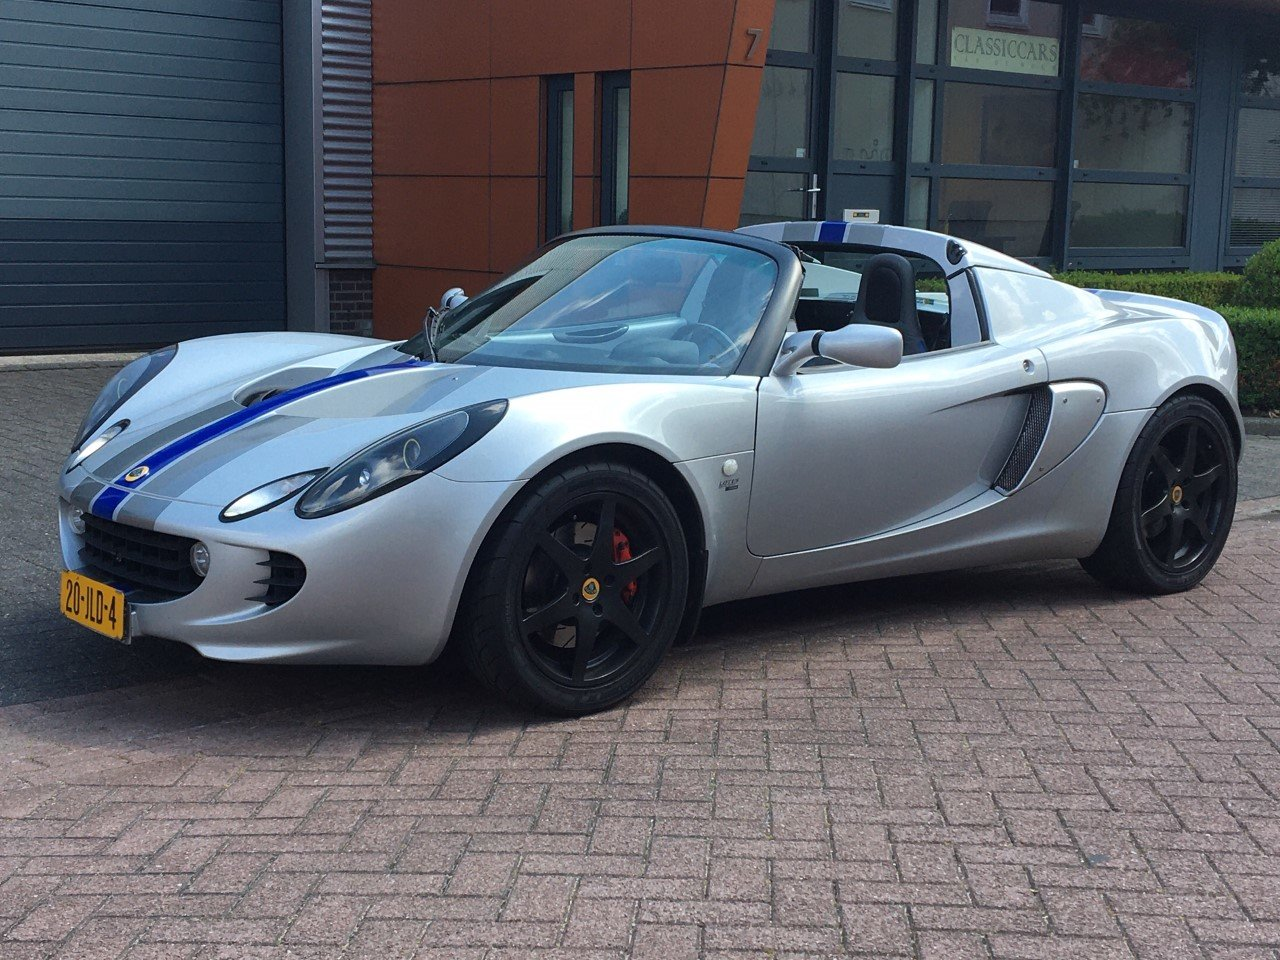 Picture of 2002 Lotus Elise S2 LHD For Sale